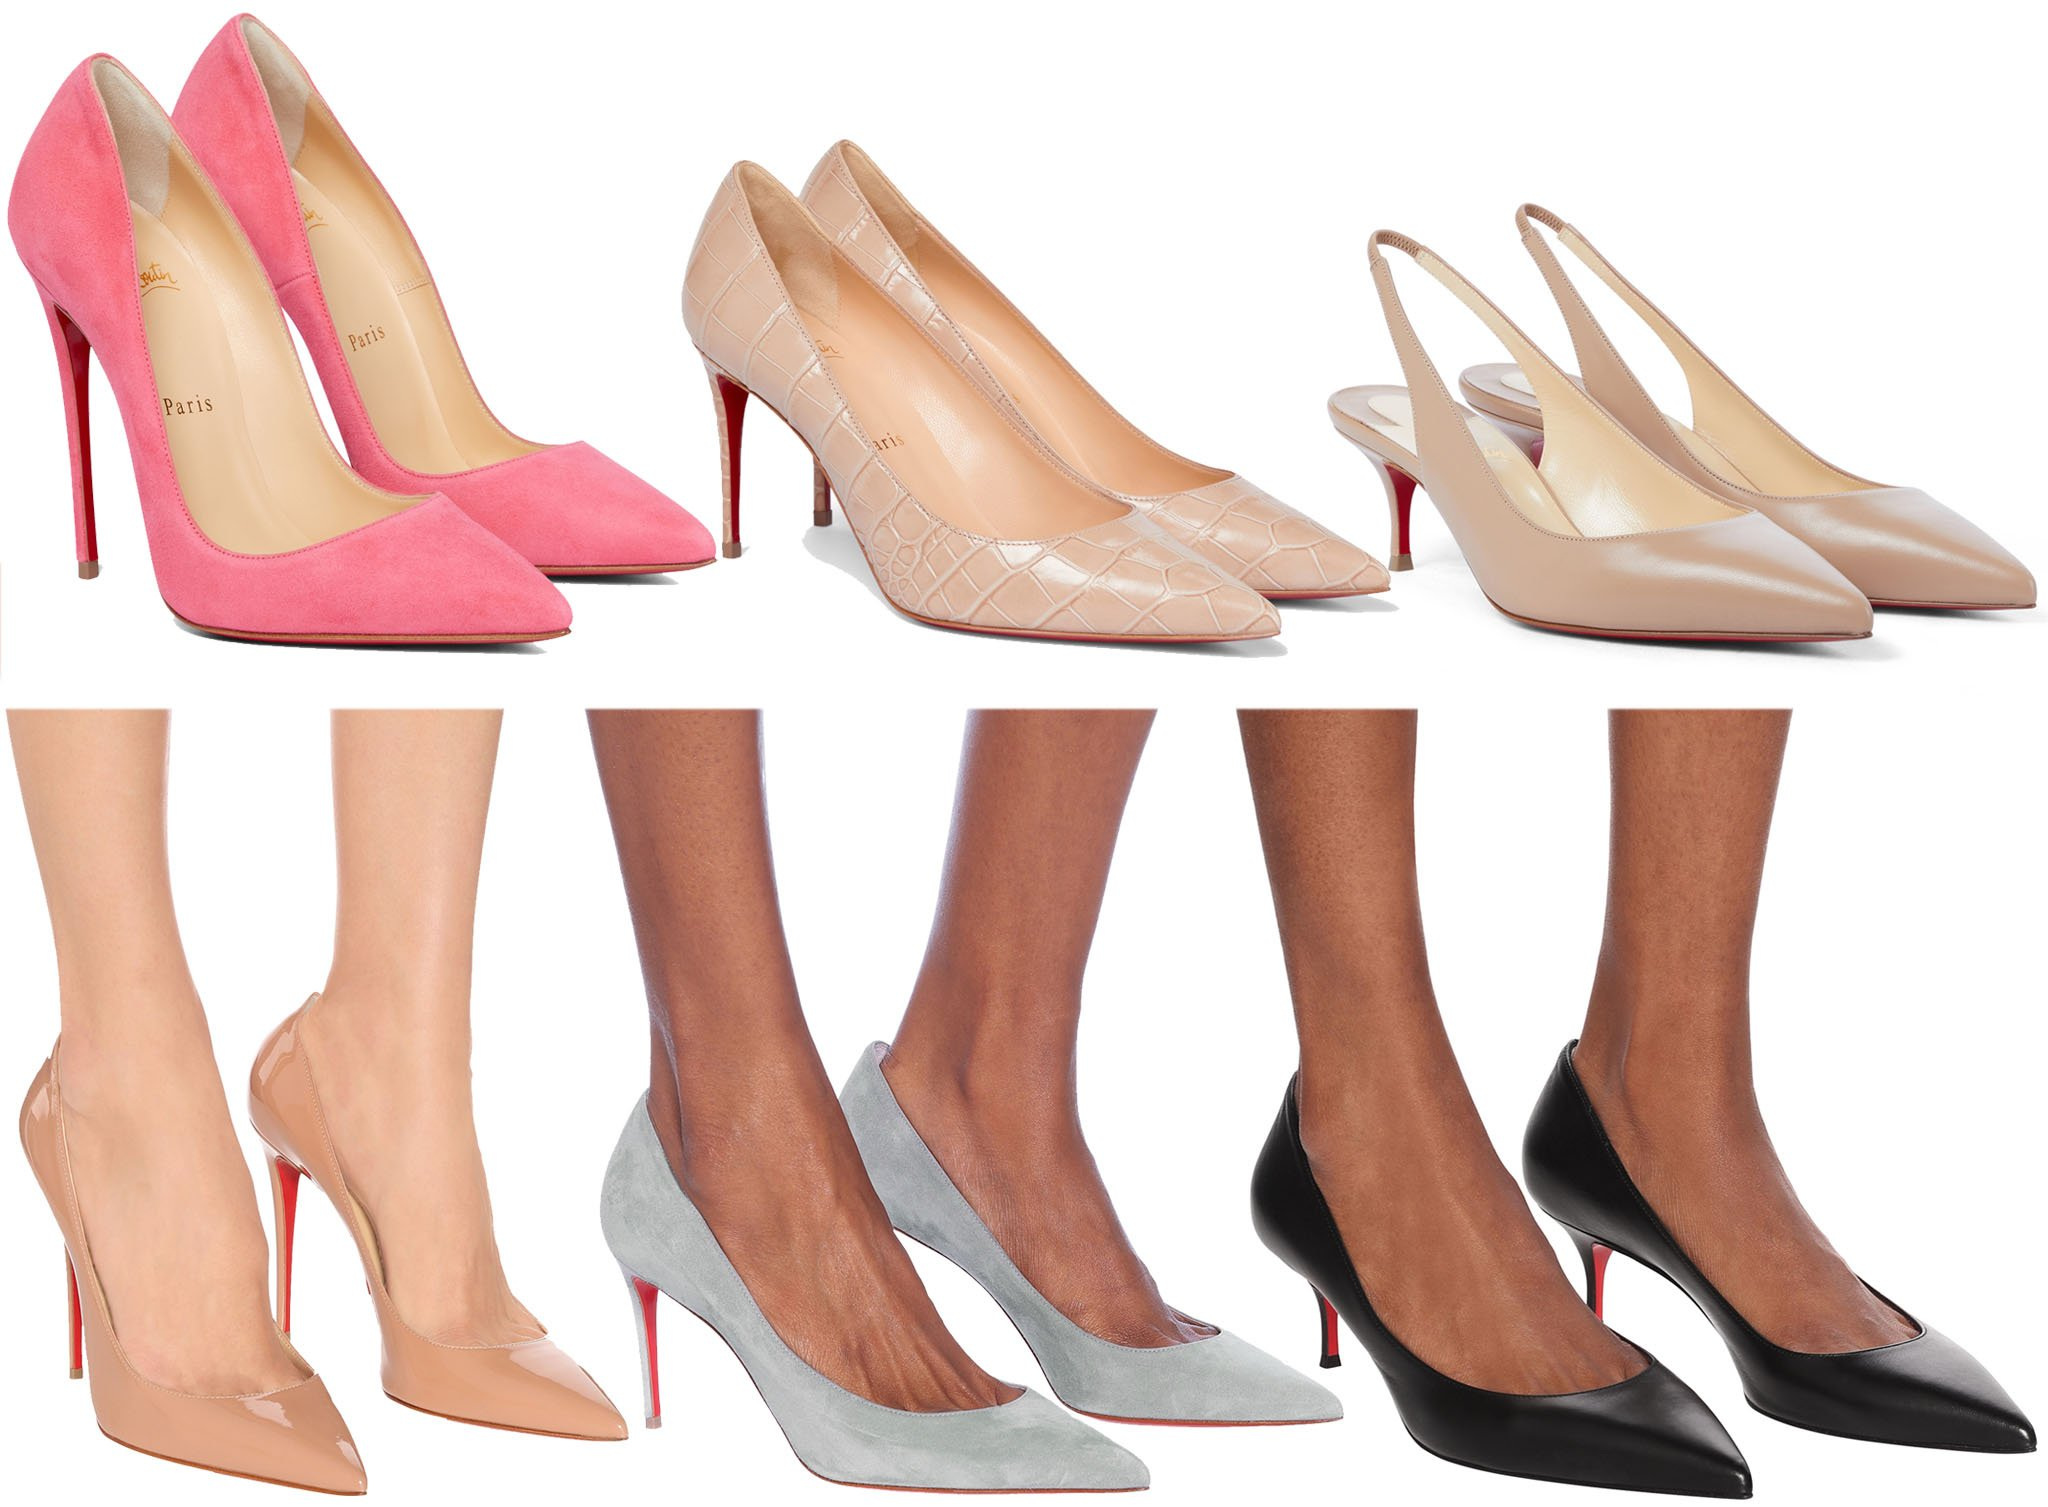 Christian Louboutin's Kate pump is available in varying heel heights for your personal preference and comfort